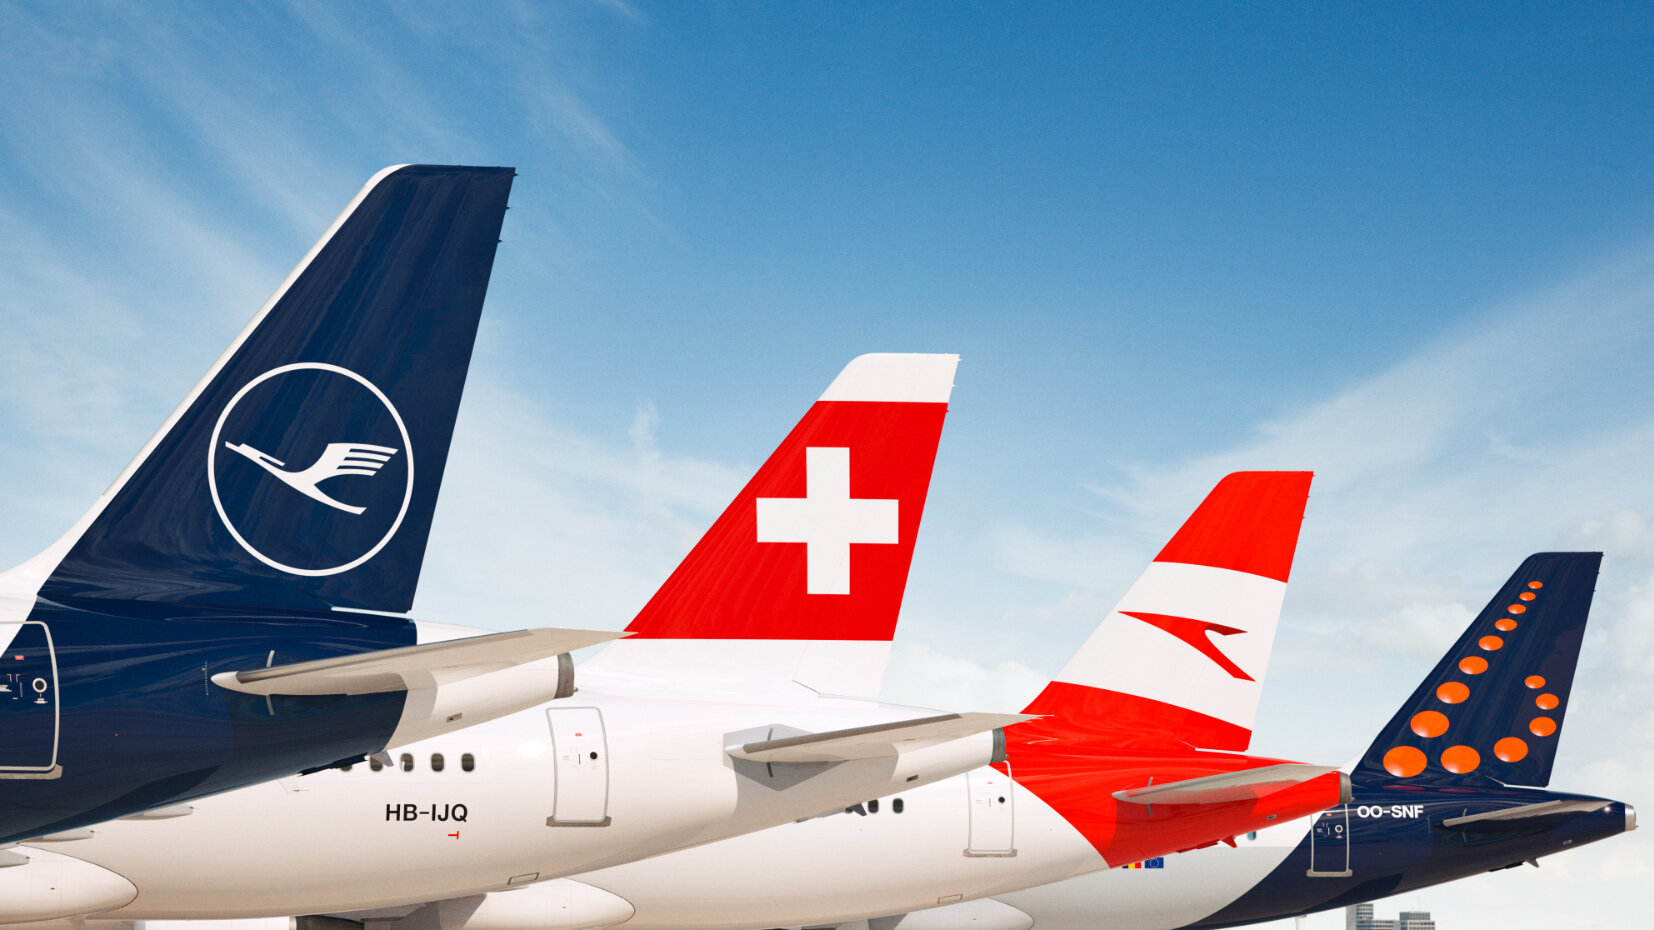 Lufthansa Group airlines: Over €2.5 billion in ticket costs reimbursed so far